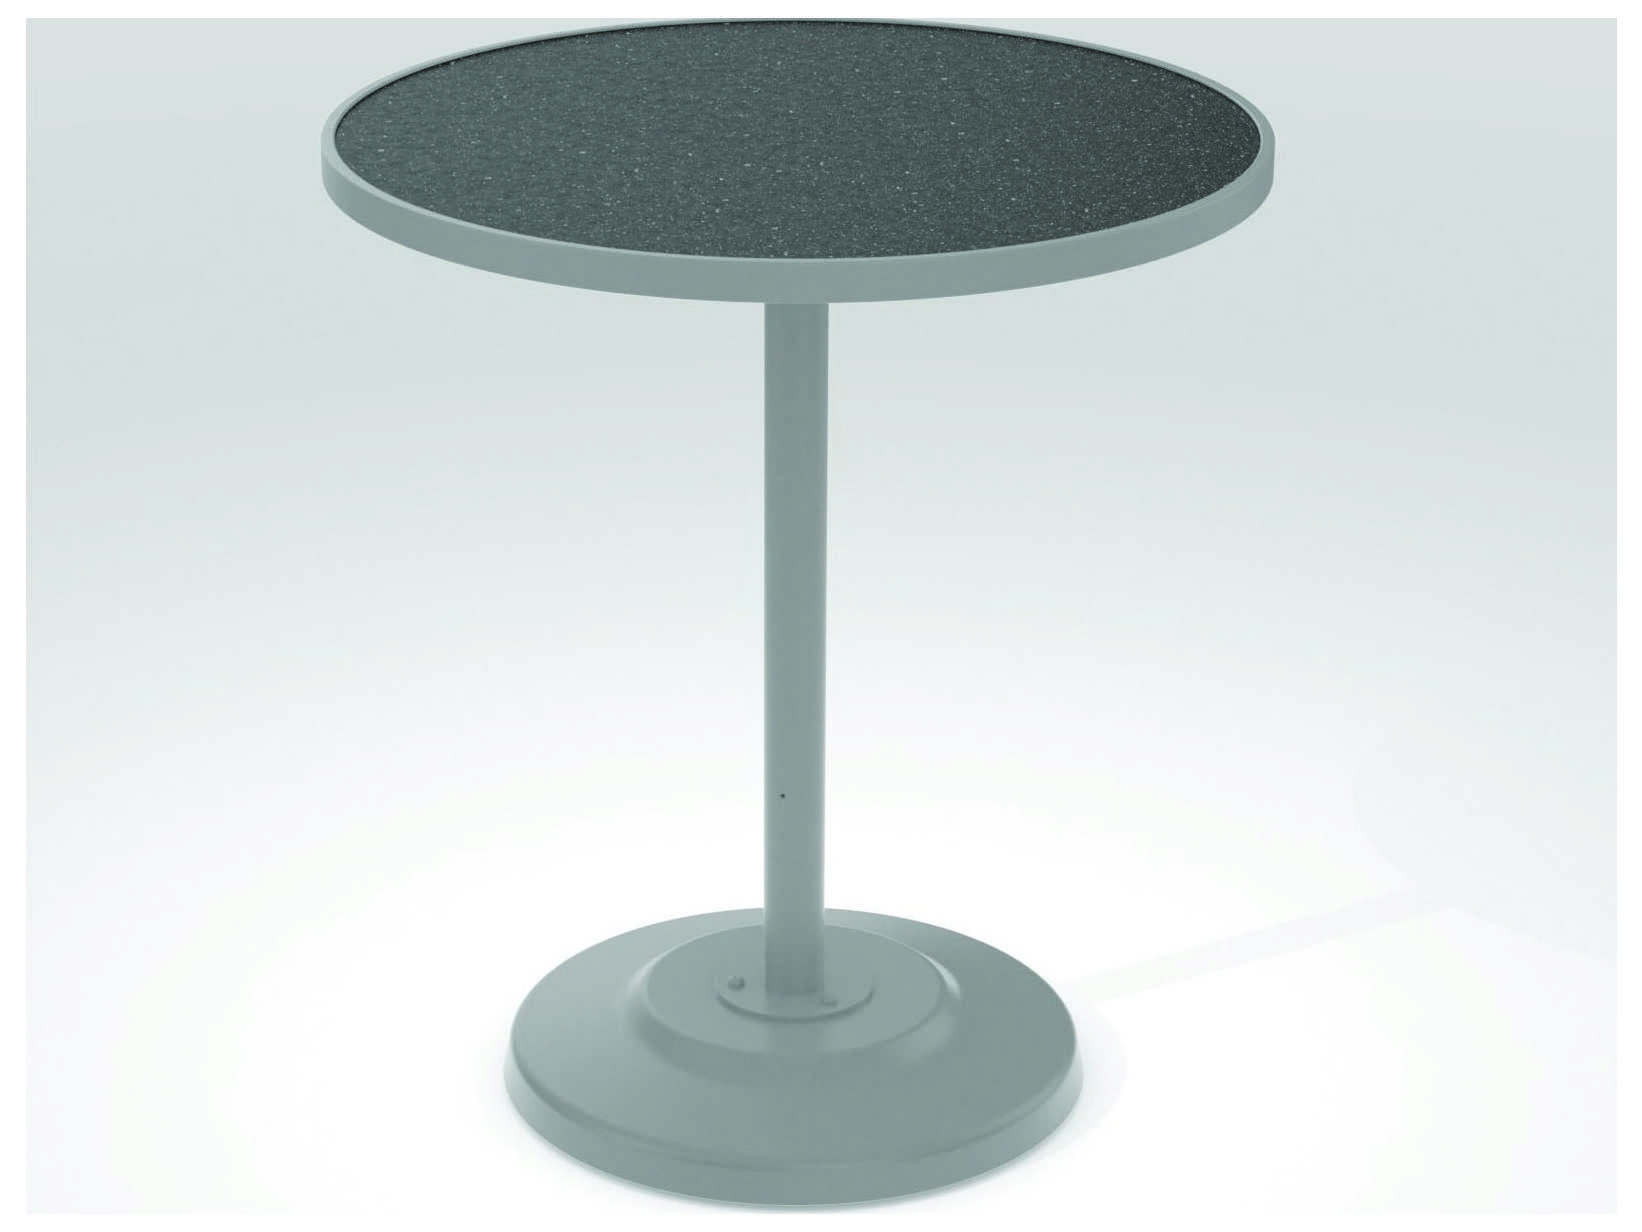 Tropitone Hpl Raduno Aluminum 36 Round Bar Table Tp701497h